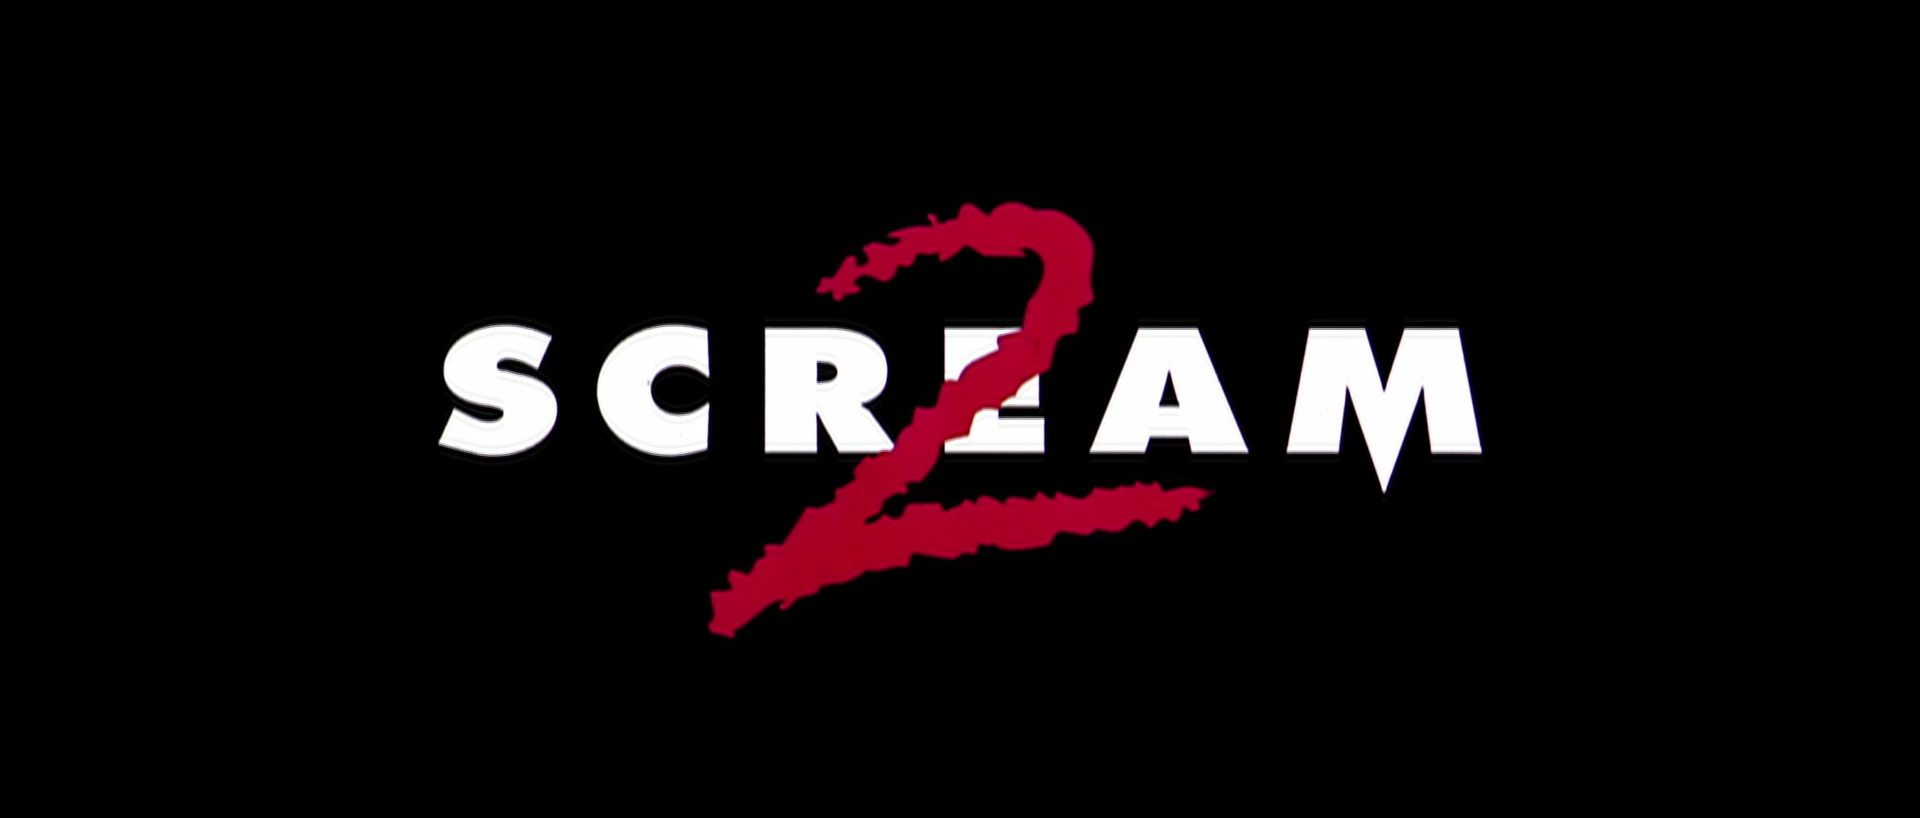 File:Scream-2-640x250.jpg